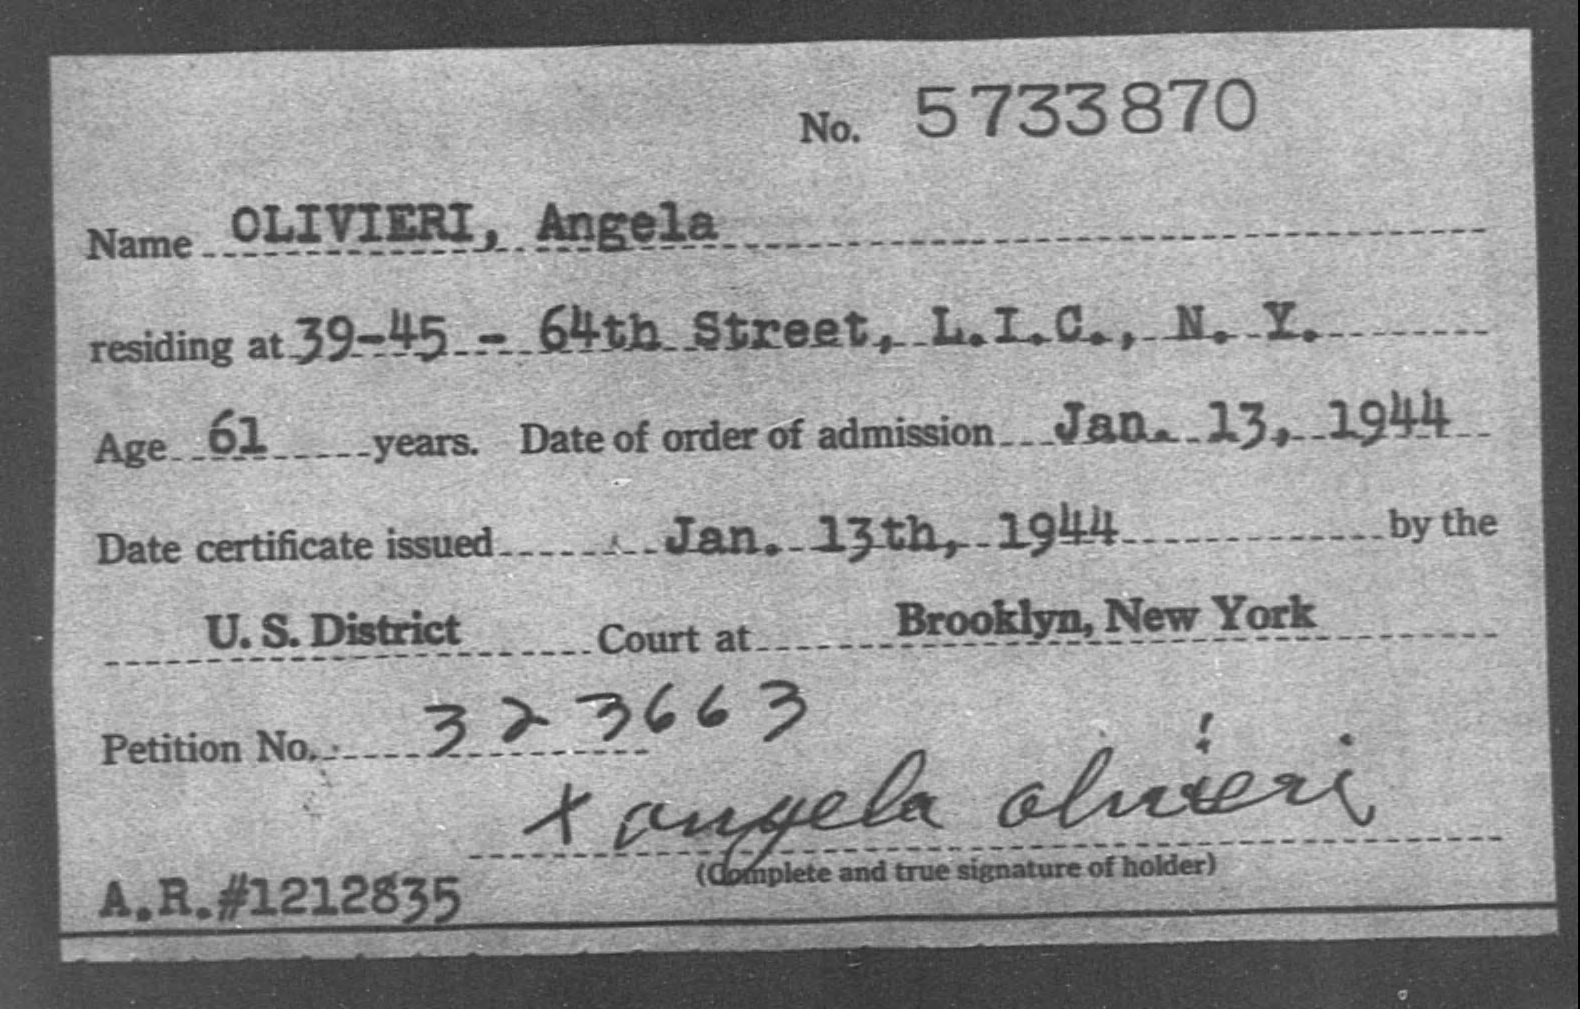 OLIVIERI, Angela - Born: [BLANK], Naturalized: 1944